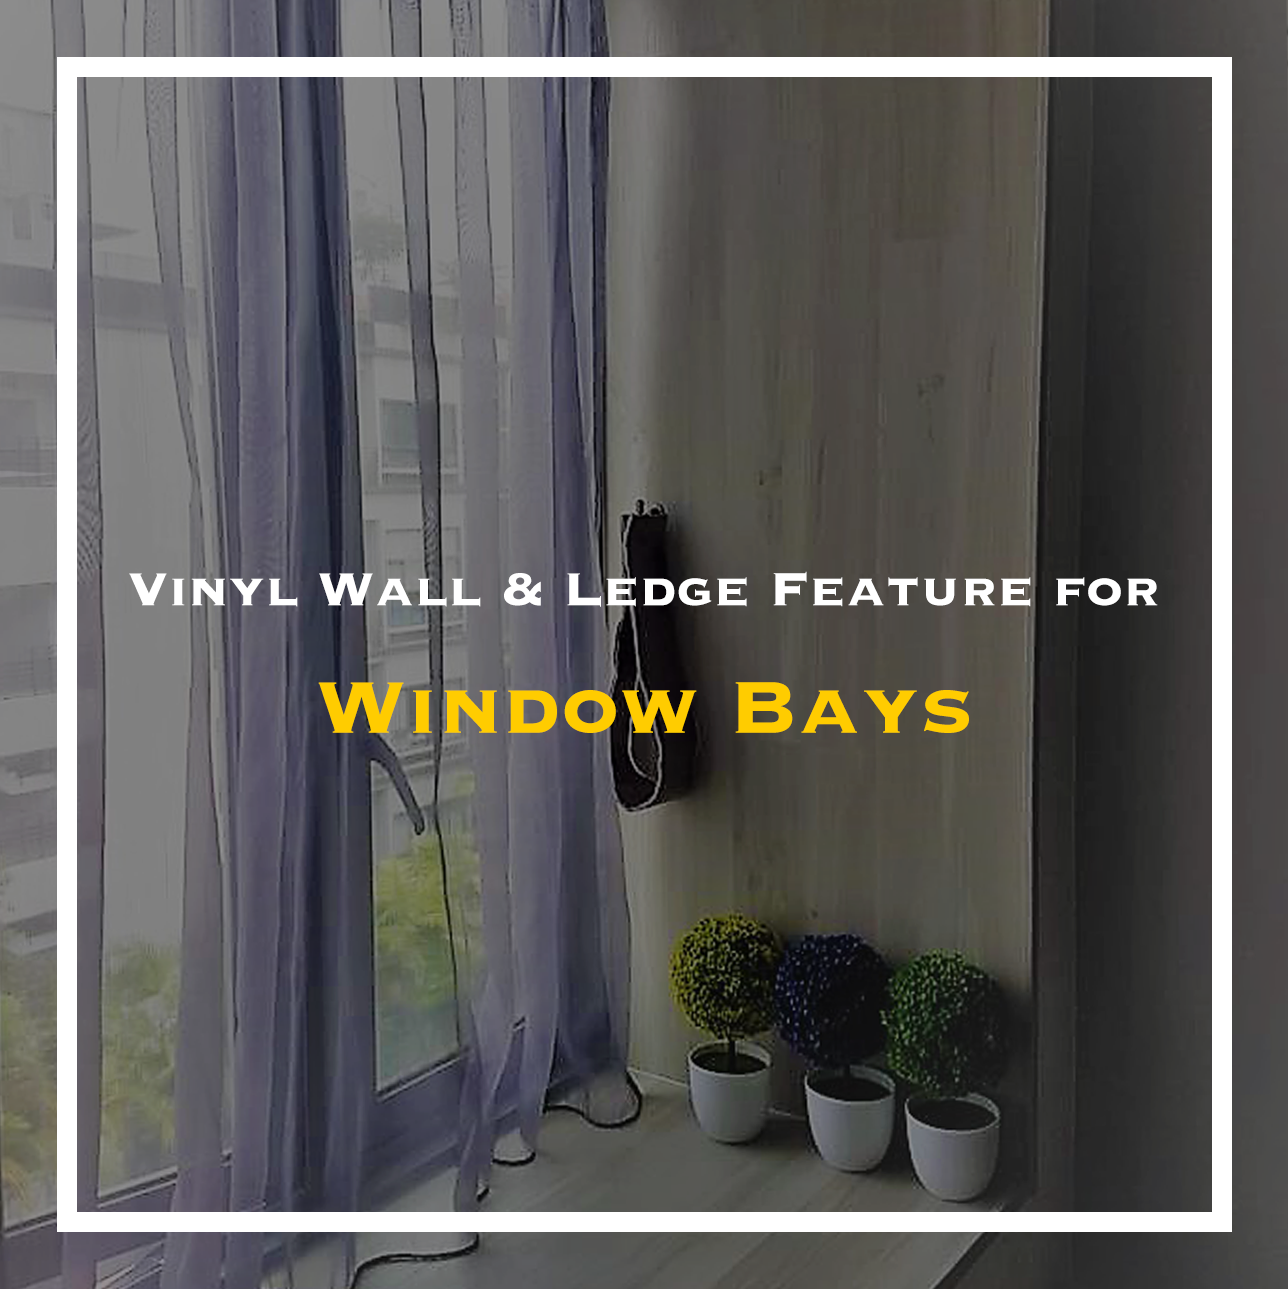 vinyl wall & ledge feature for window bays